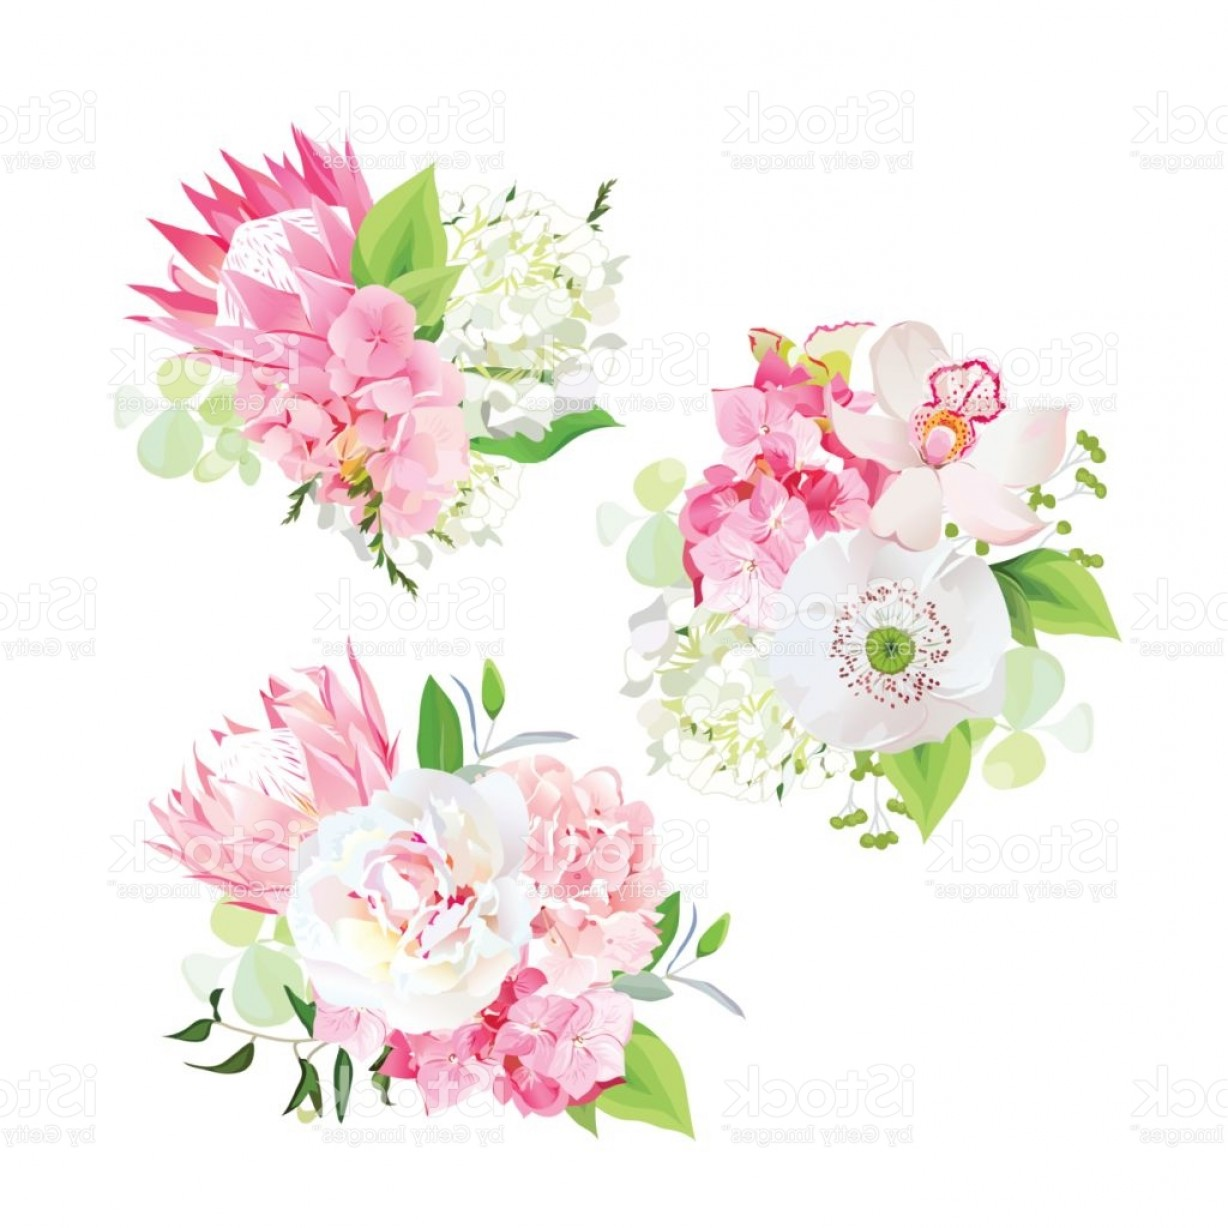 Hydrangea Vector Graphics: Spring Mixed Bouquets Of Pink And White Hydrangea Protea Flower Gm